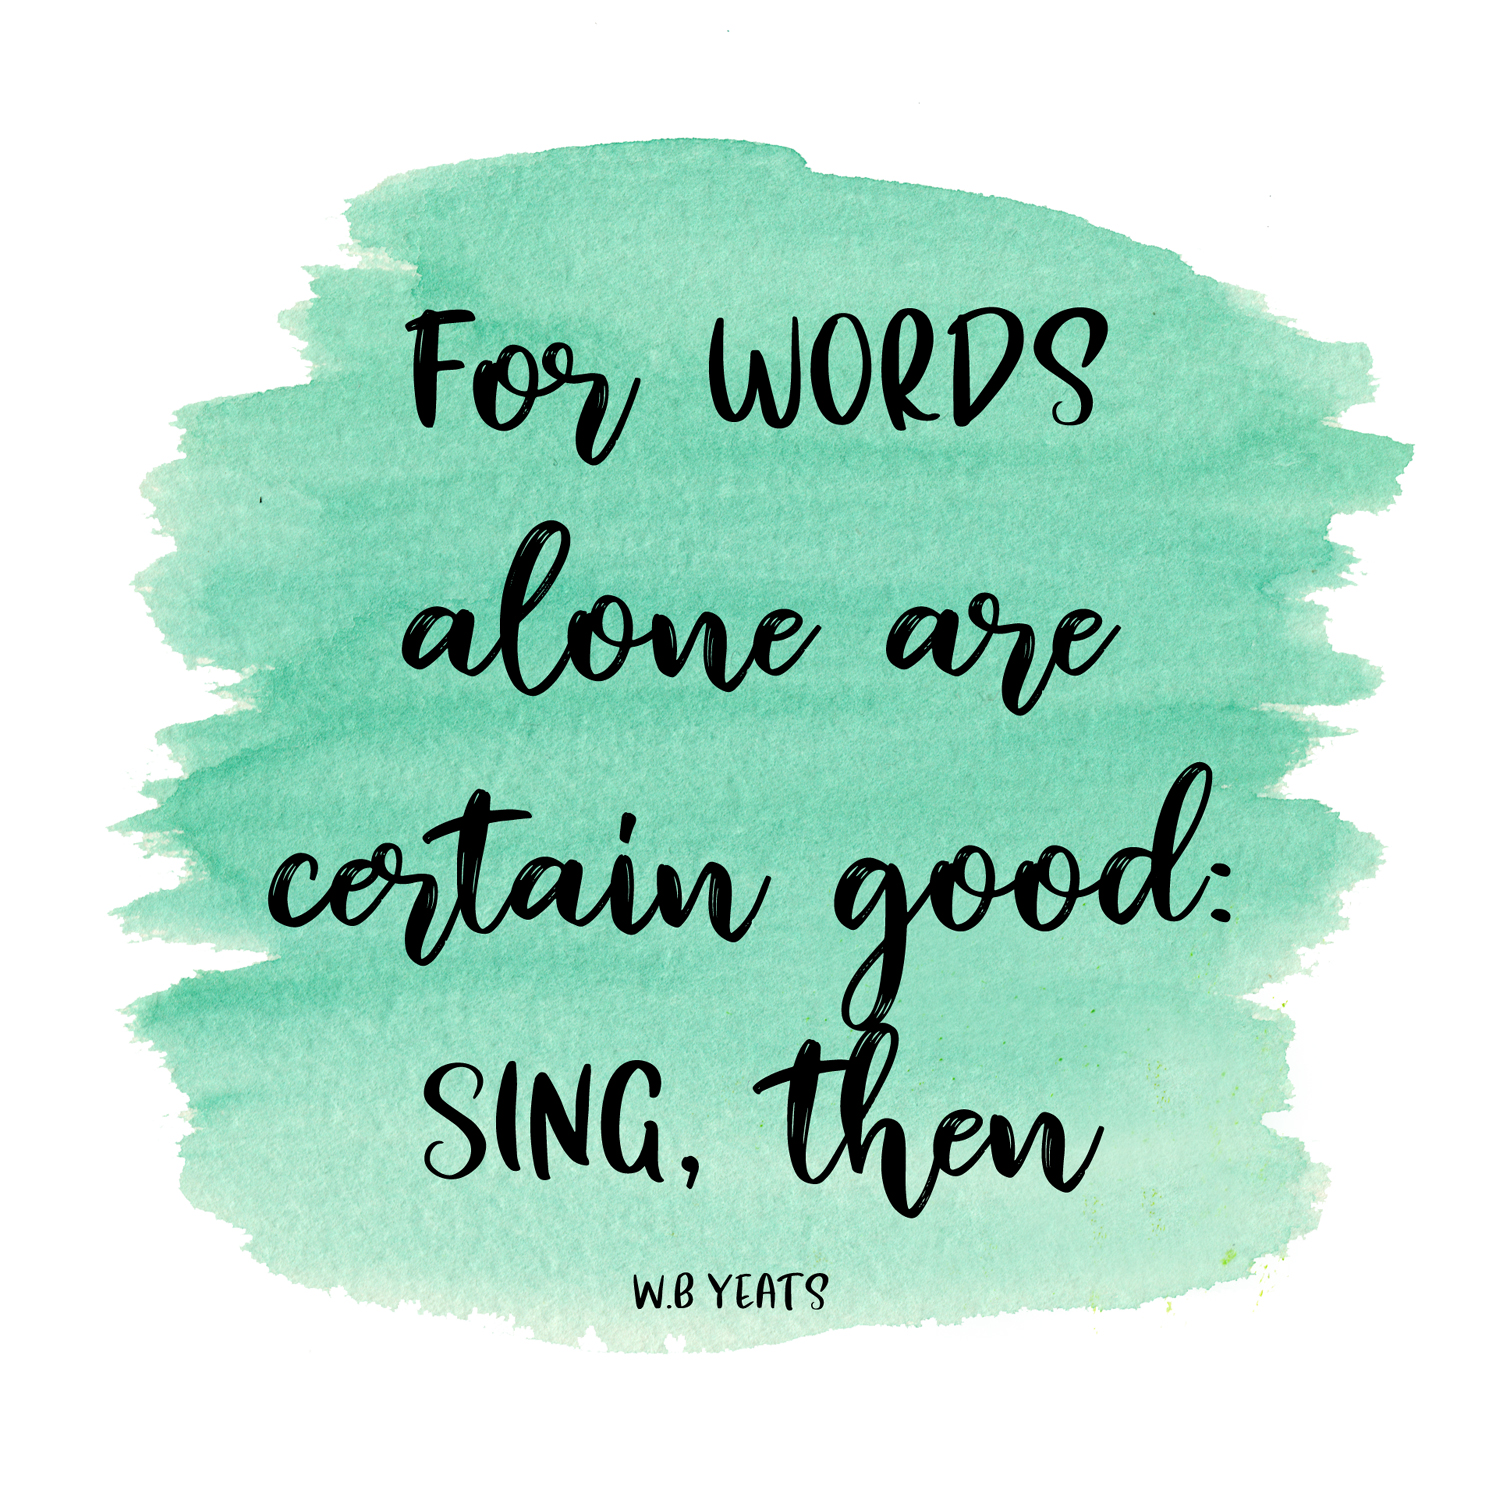 for words alone are certain good sing then wb yeats quote by amanda gorman poet